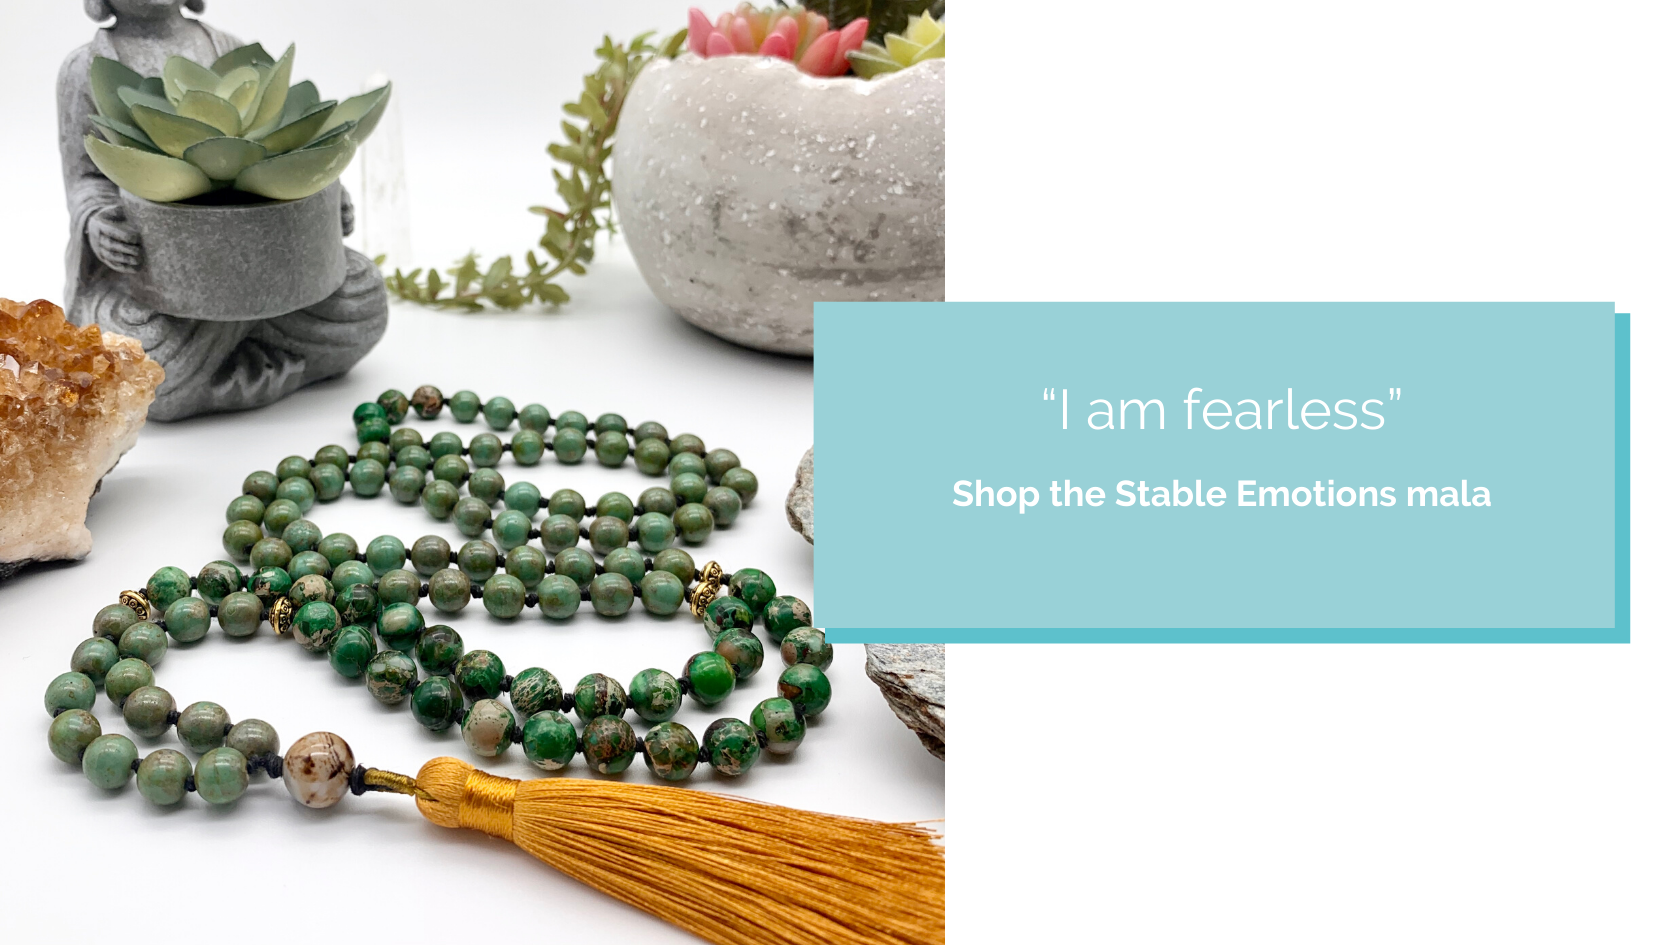 Shop the Stable Emotions Mala